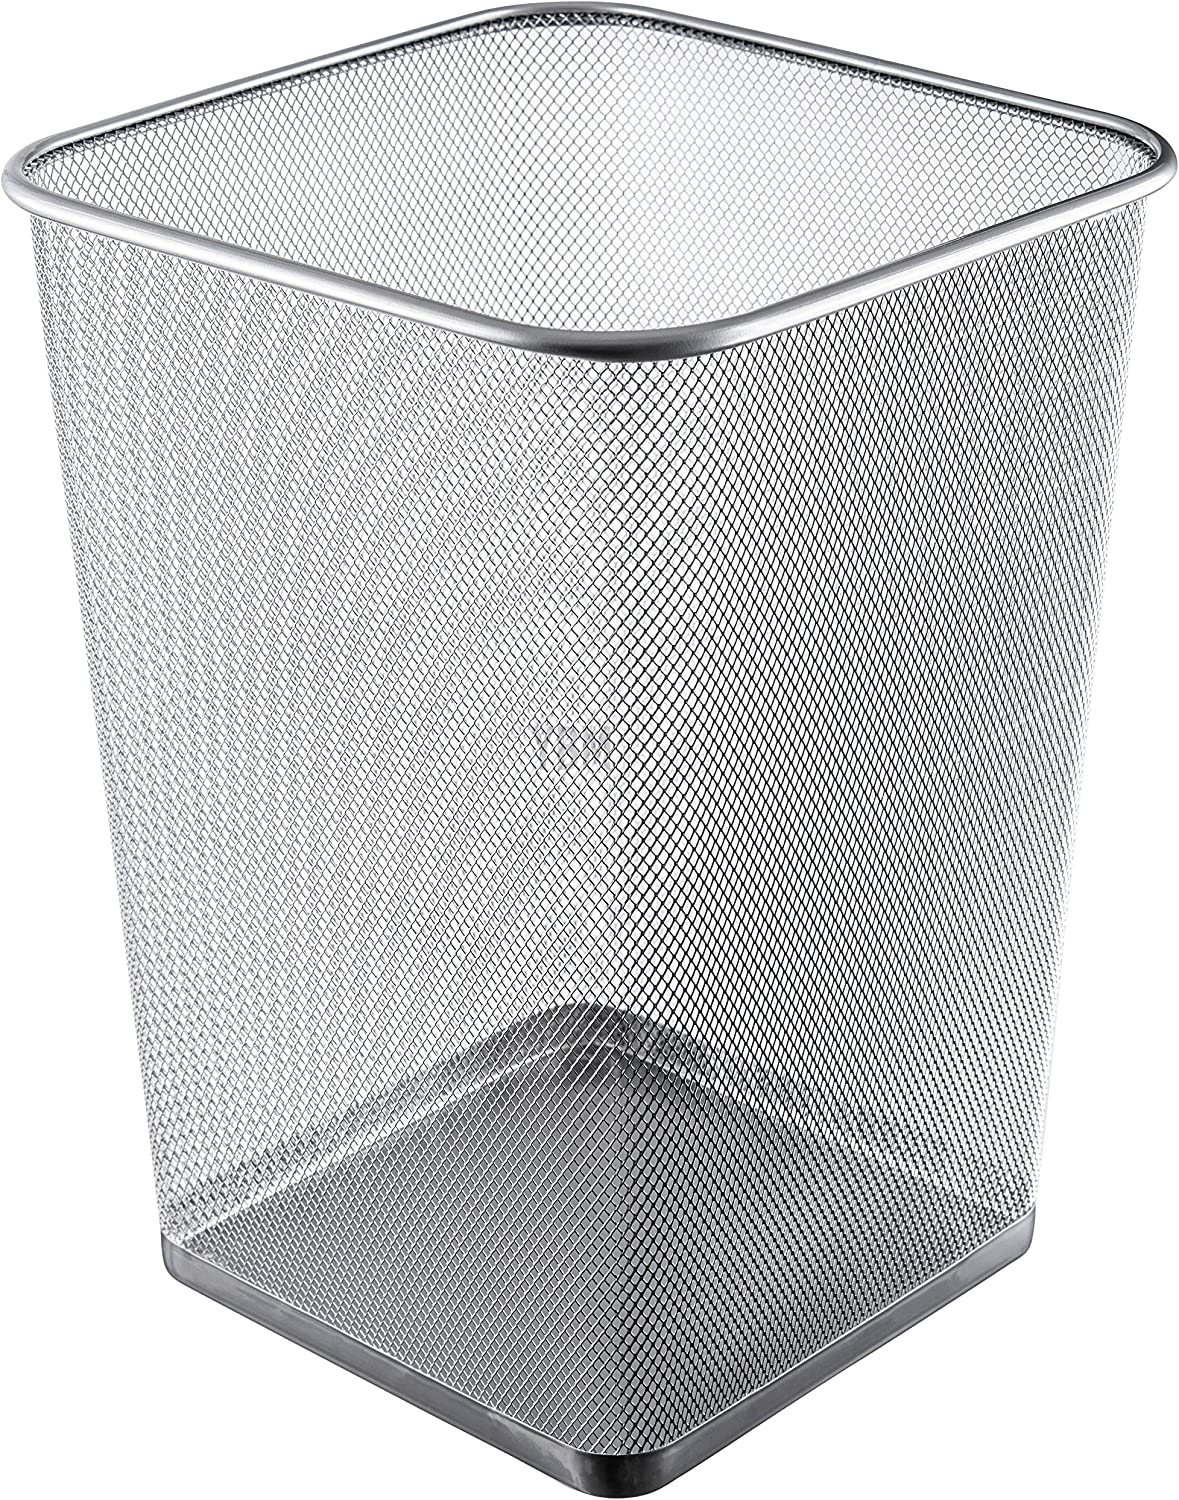 Ybmhome Steel Silver Mesh Square Open Top Waste Basket Bin Trash Can for Office Home 2487 (1, 5 Gallon)